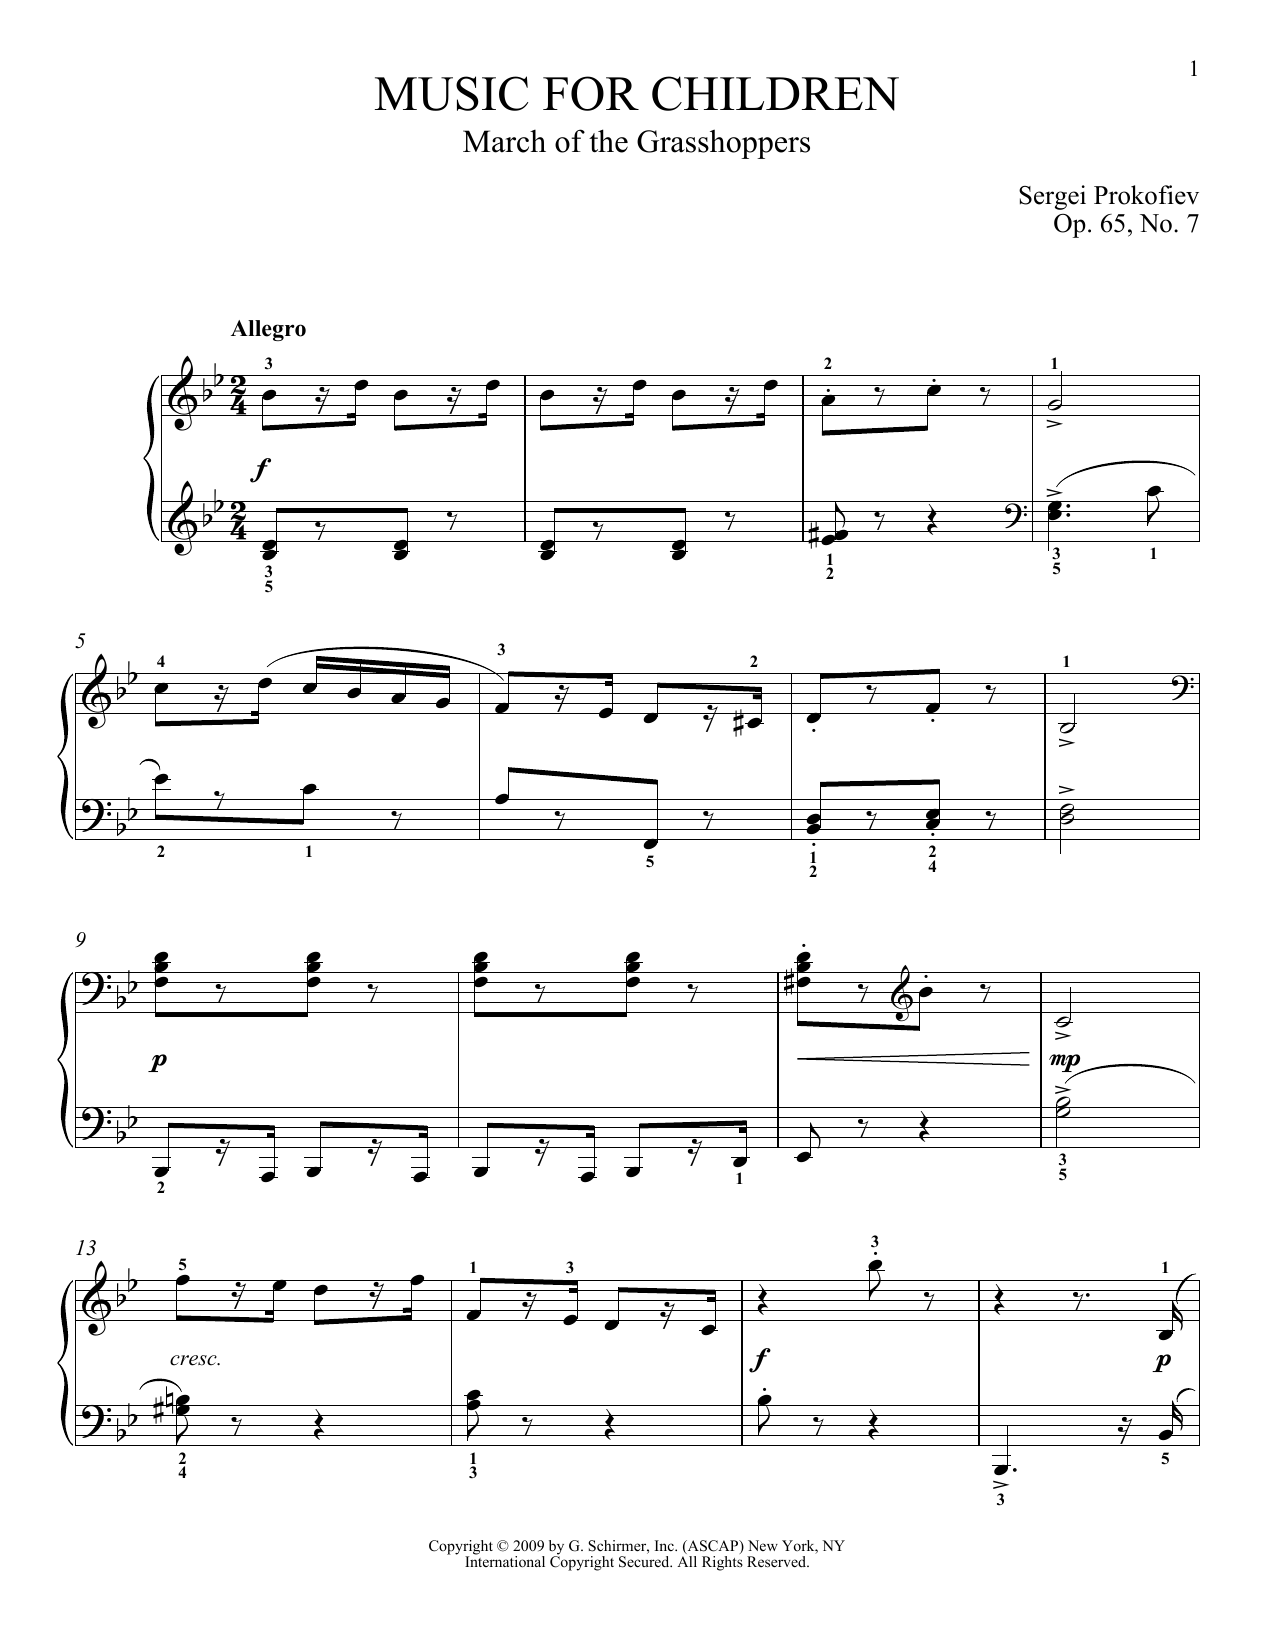 Sergei Prokofiev March Of The Grasshoppers sheet music notes and chords. Download Printable PDF.